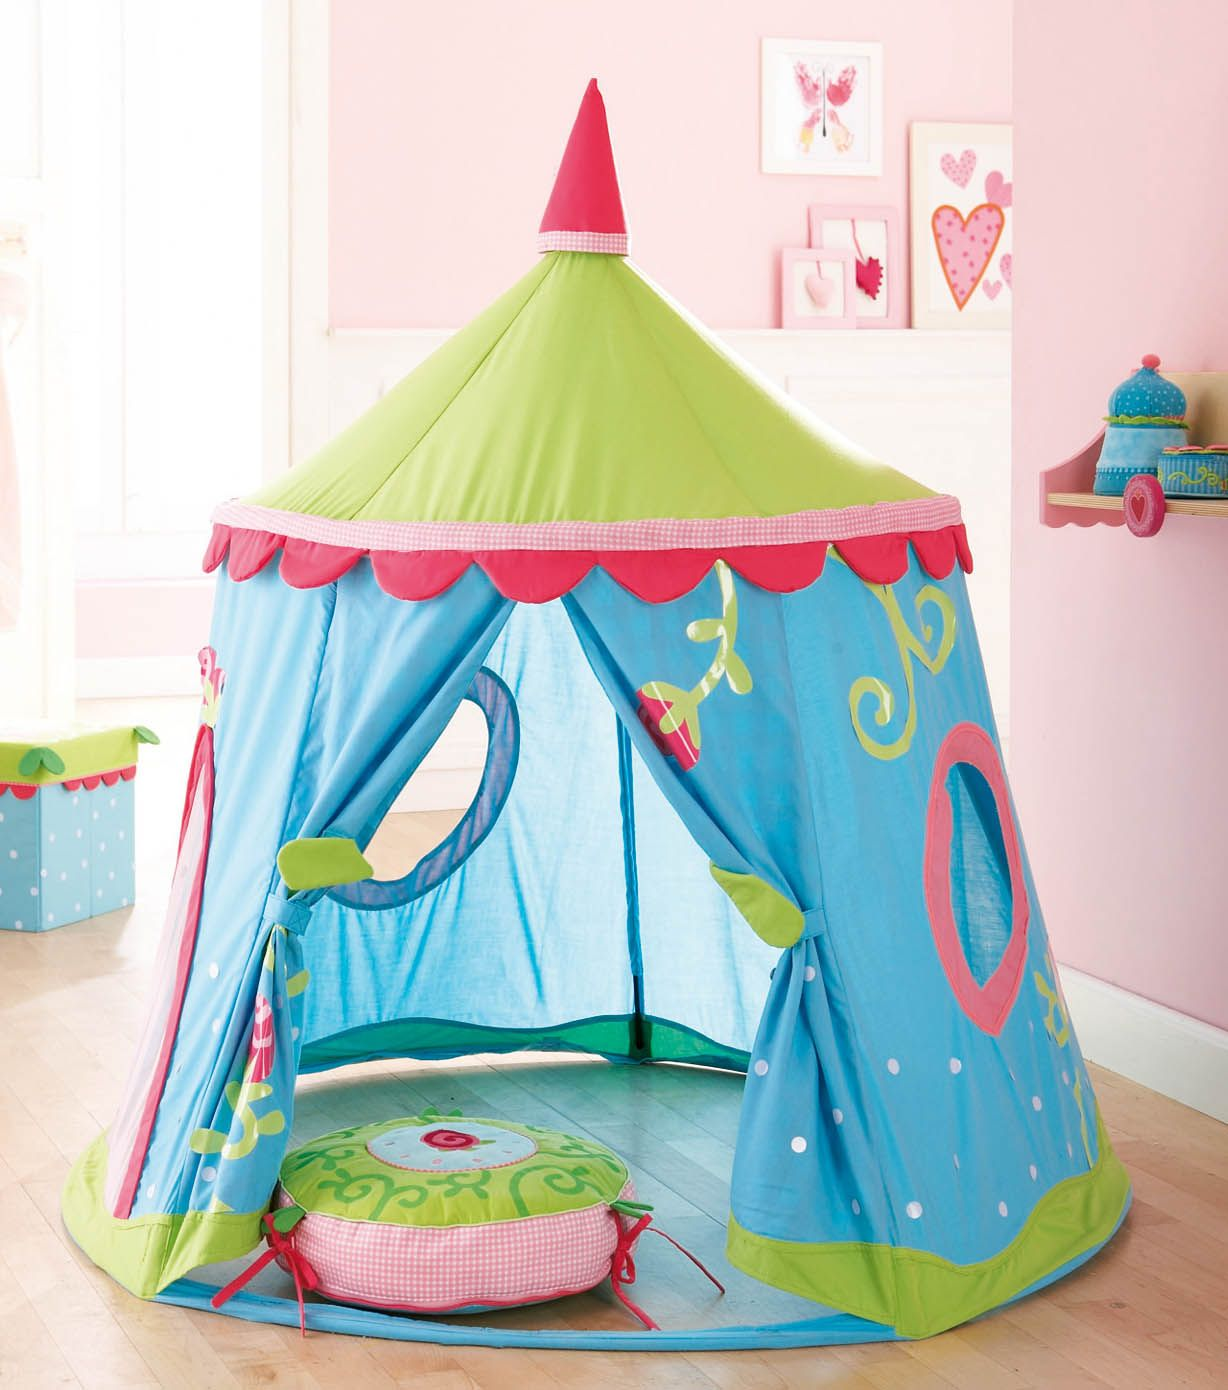 Haba - Play Tent Caro-Lini by Haba  sc 1 st  Pinterest : childrens play tent - memphite.com